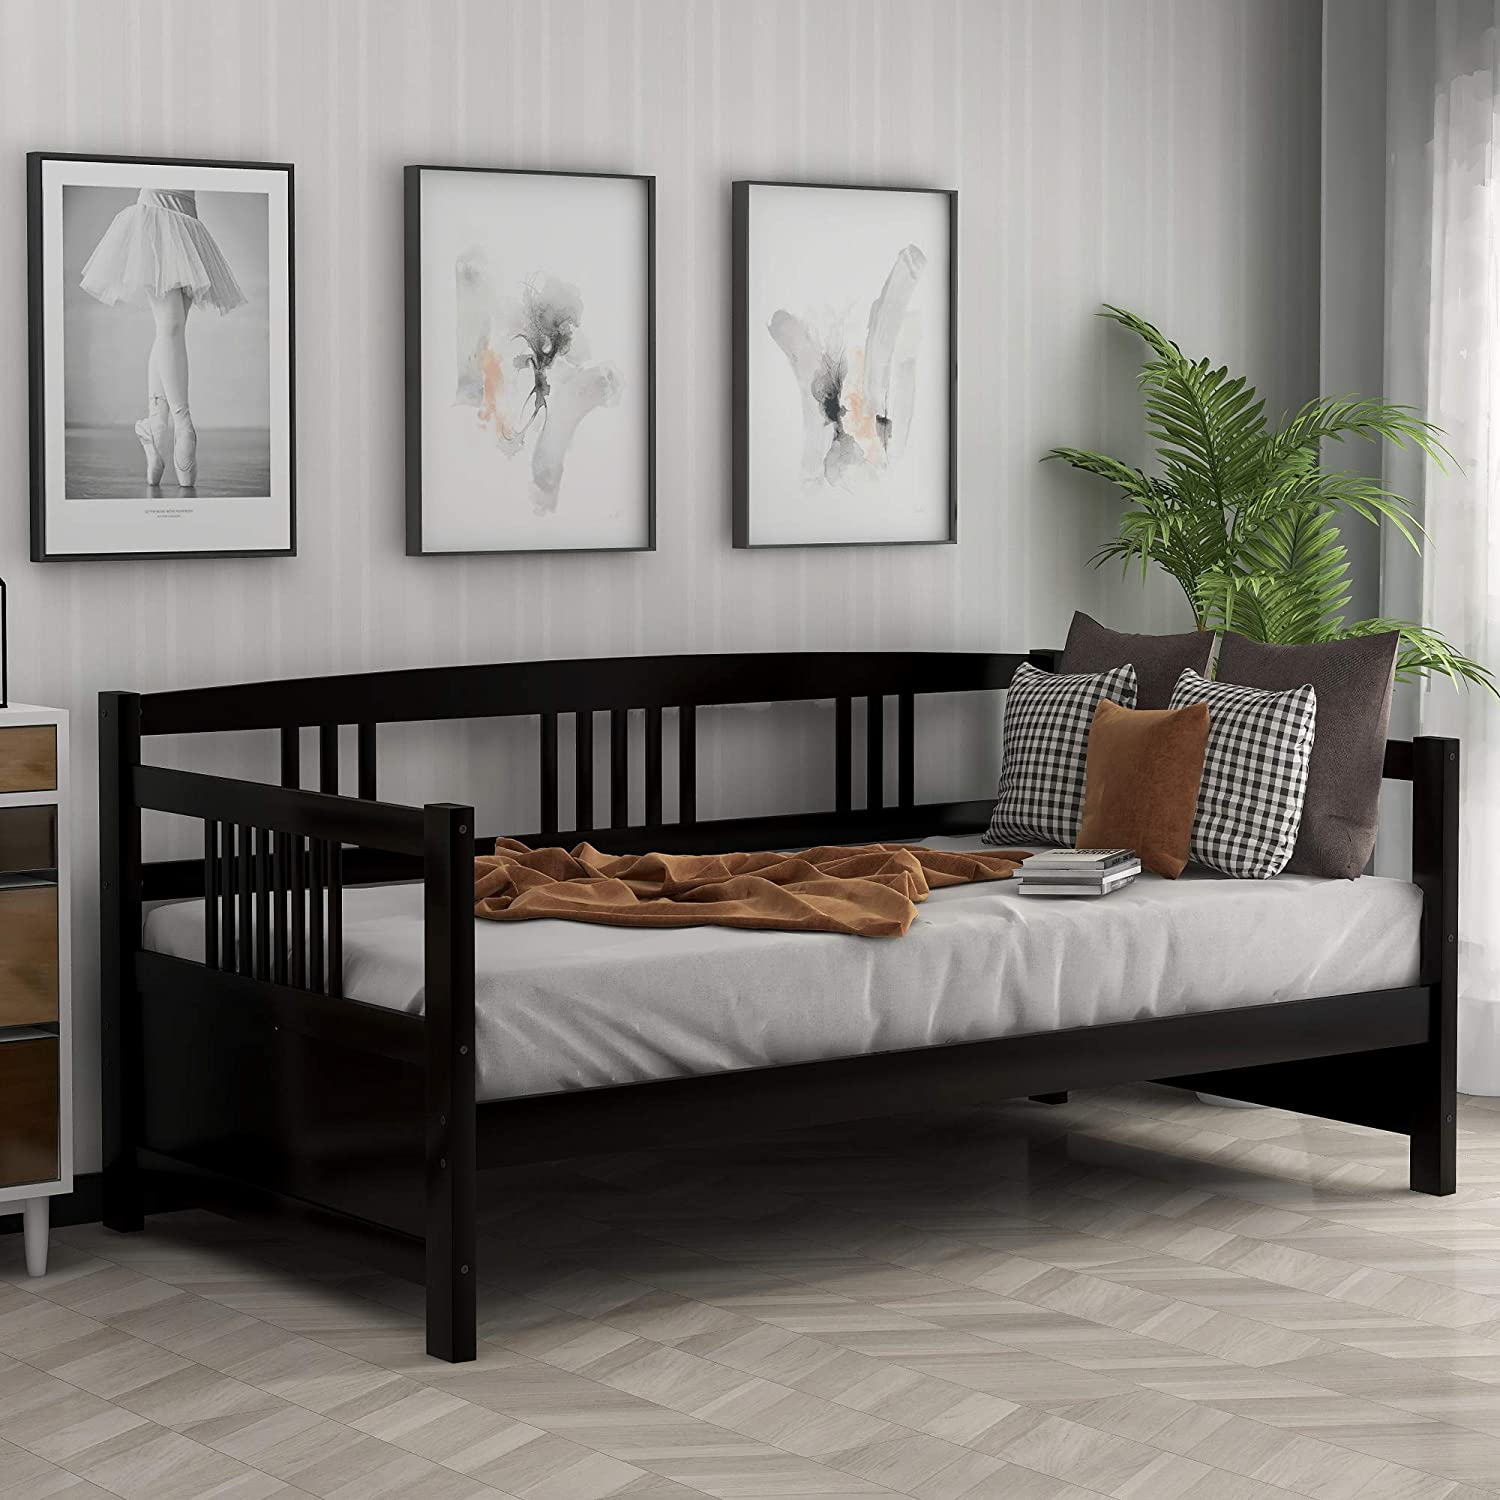 Solid Wood Daybed Frame Twin Size, Multifunctional Daybed, Three-Sided Guard Rail, Bedroom or Living Room Furniture, Wooden Slats Support, Space Saving (Retro Espresso)